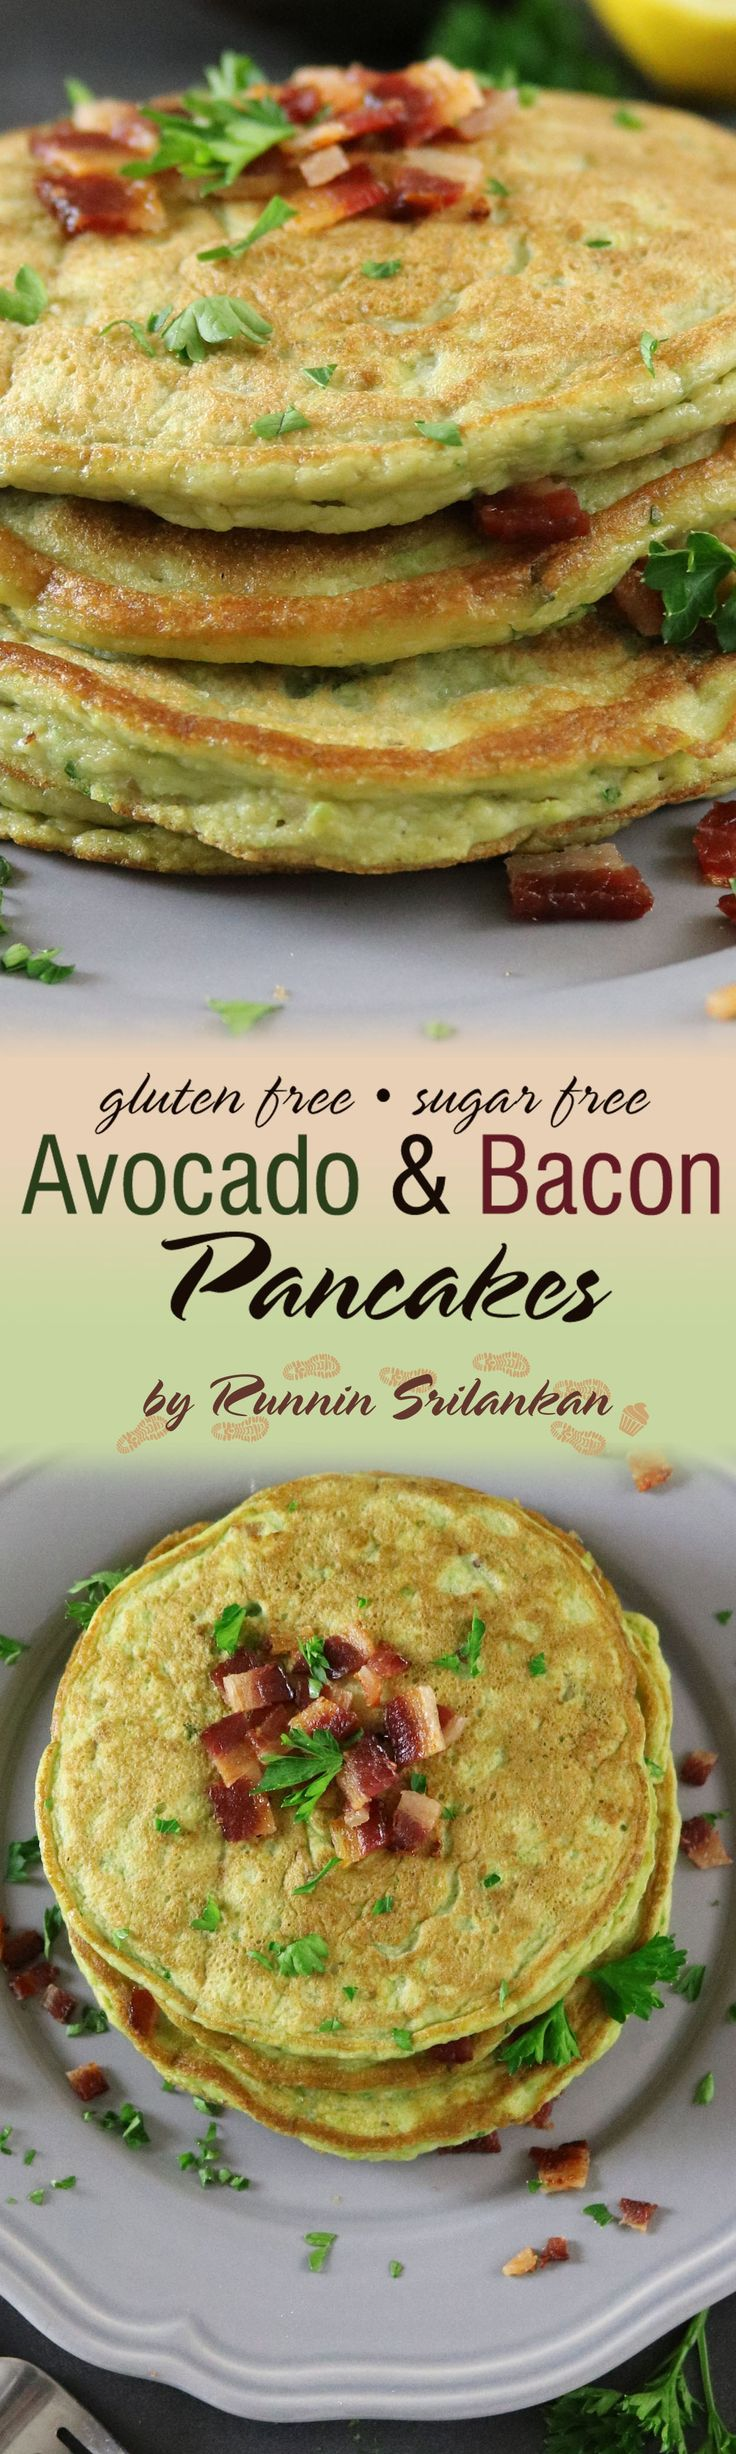 Avocado & Bacon Pancakes - The recipe for these delicious, gluten free…